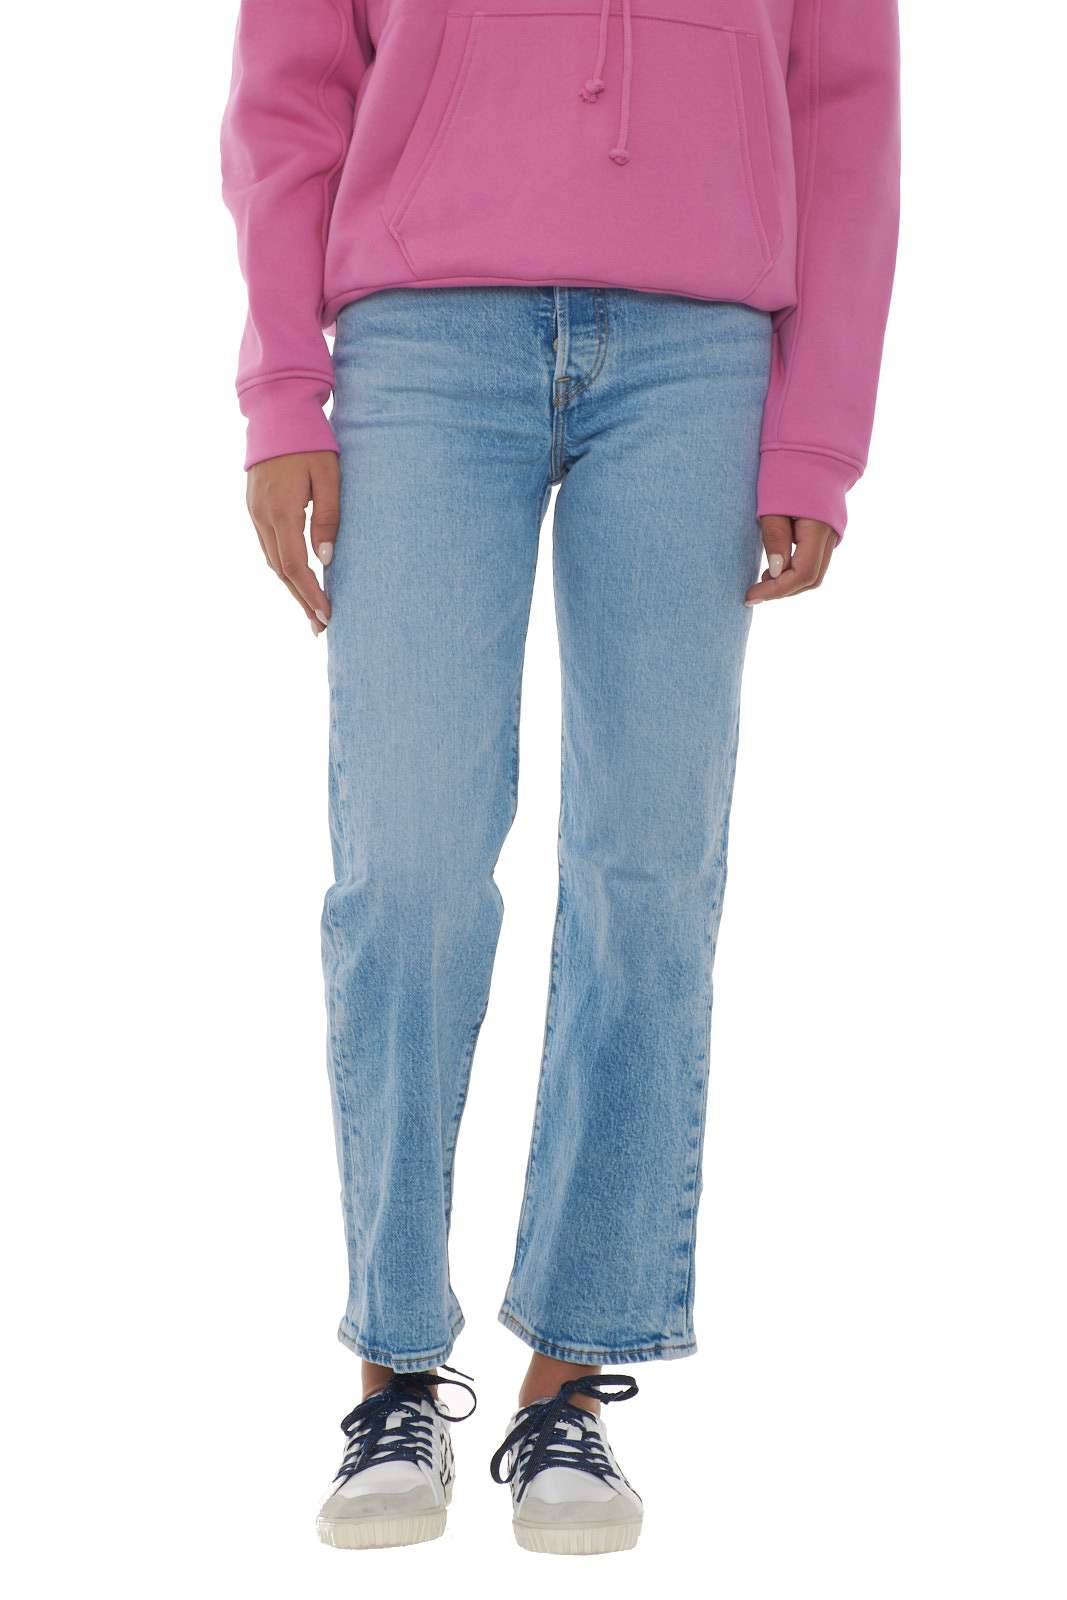 https://www.parmax.com/media/catalog/product/a/i/AI-outlet_parmax-denim-donna-Levis-72693%200023-A.jpg